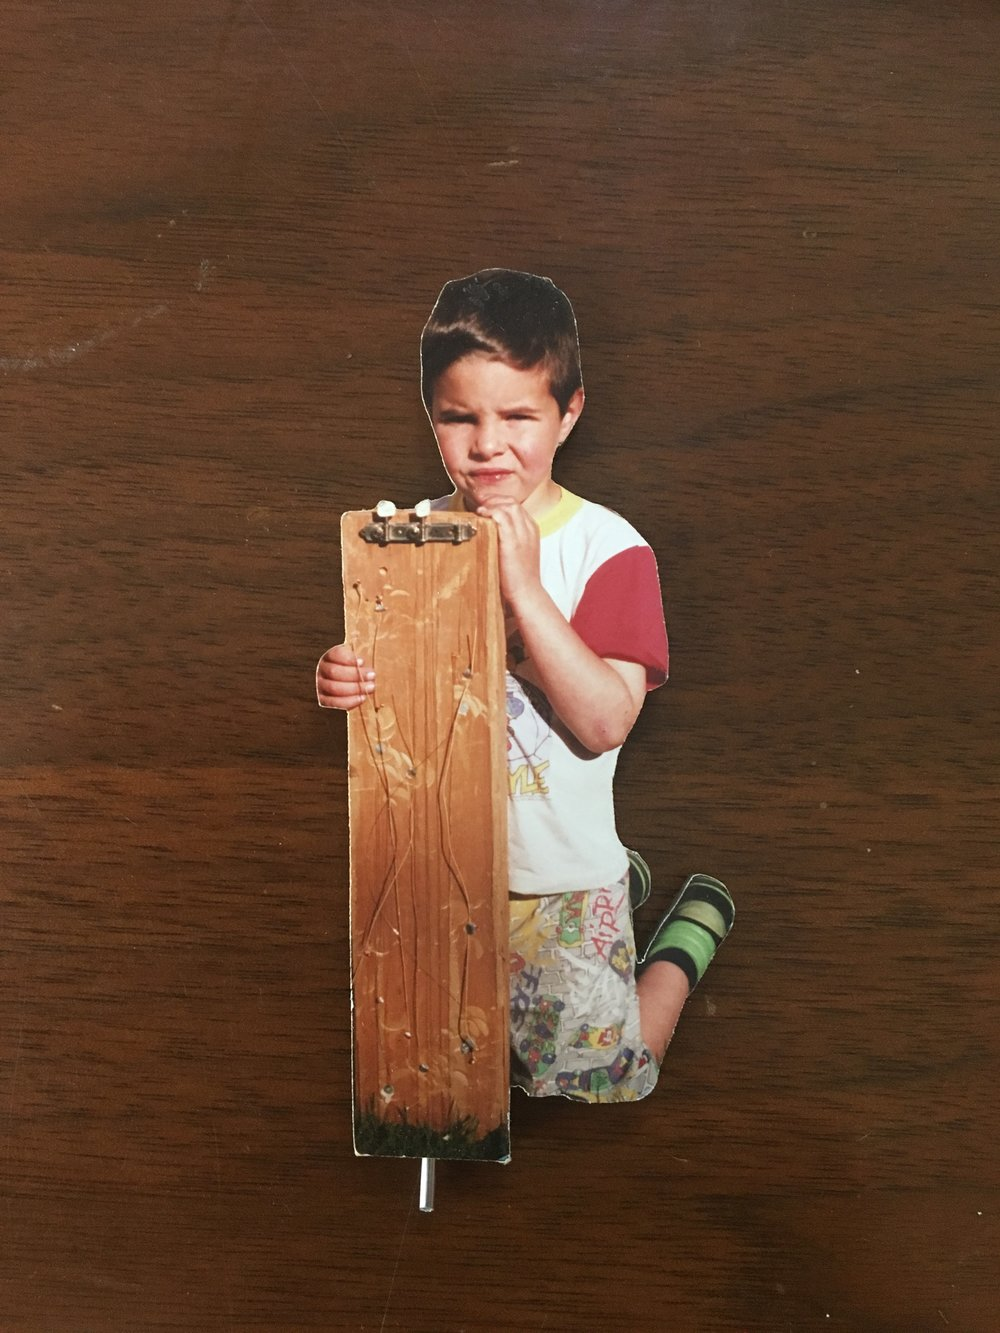 David's firstborn and the business' namesake clutching his own creation made out of a block of cedar for guitar tops. The young Morgan added tuners and nails himself to hold the strings down.